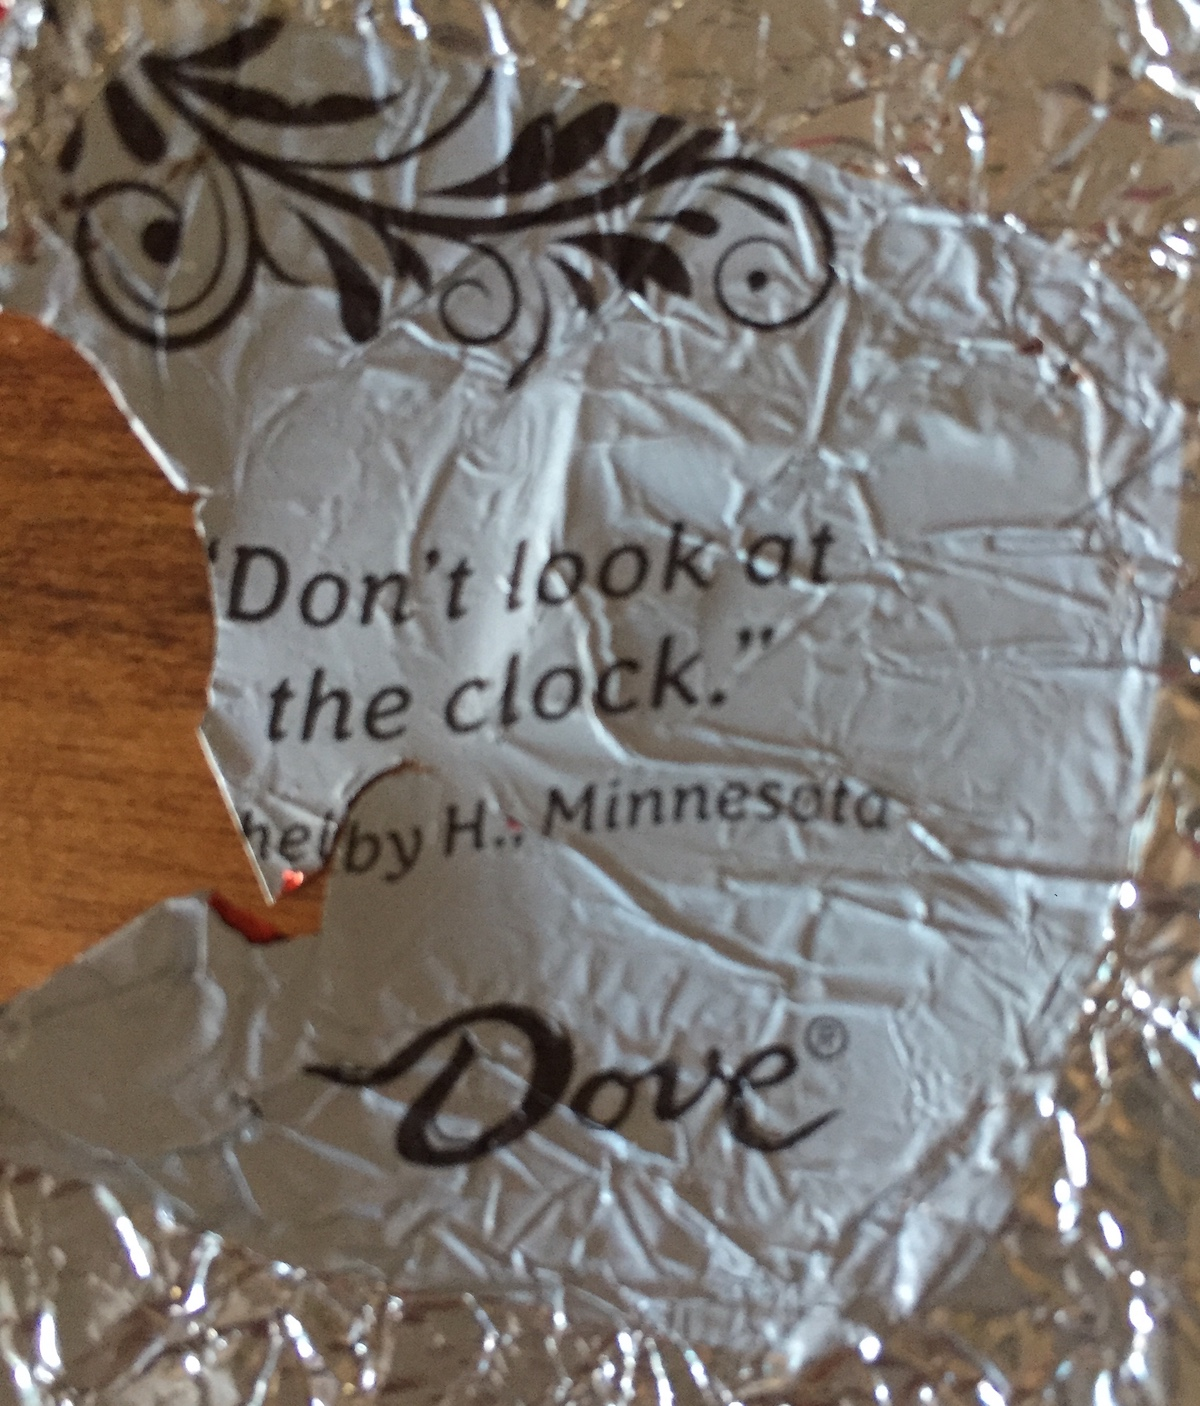 Dove chocolate wrapper with message of 'Don't Look at the Clock'.